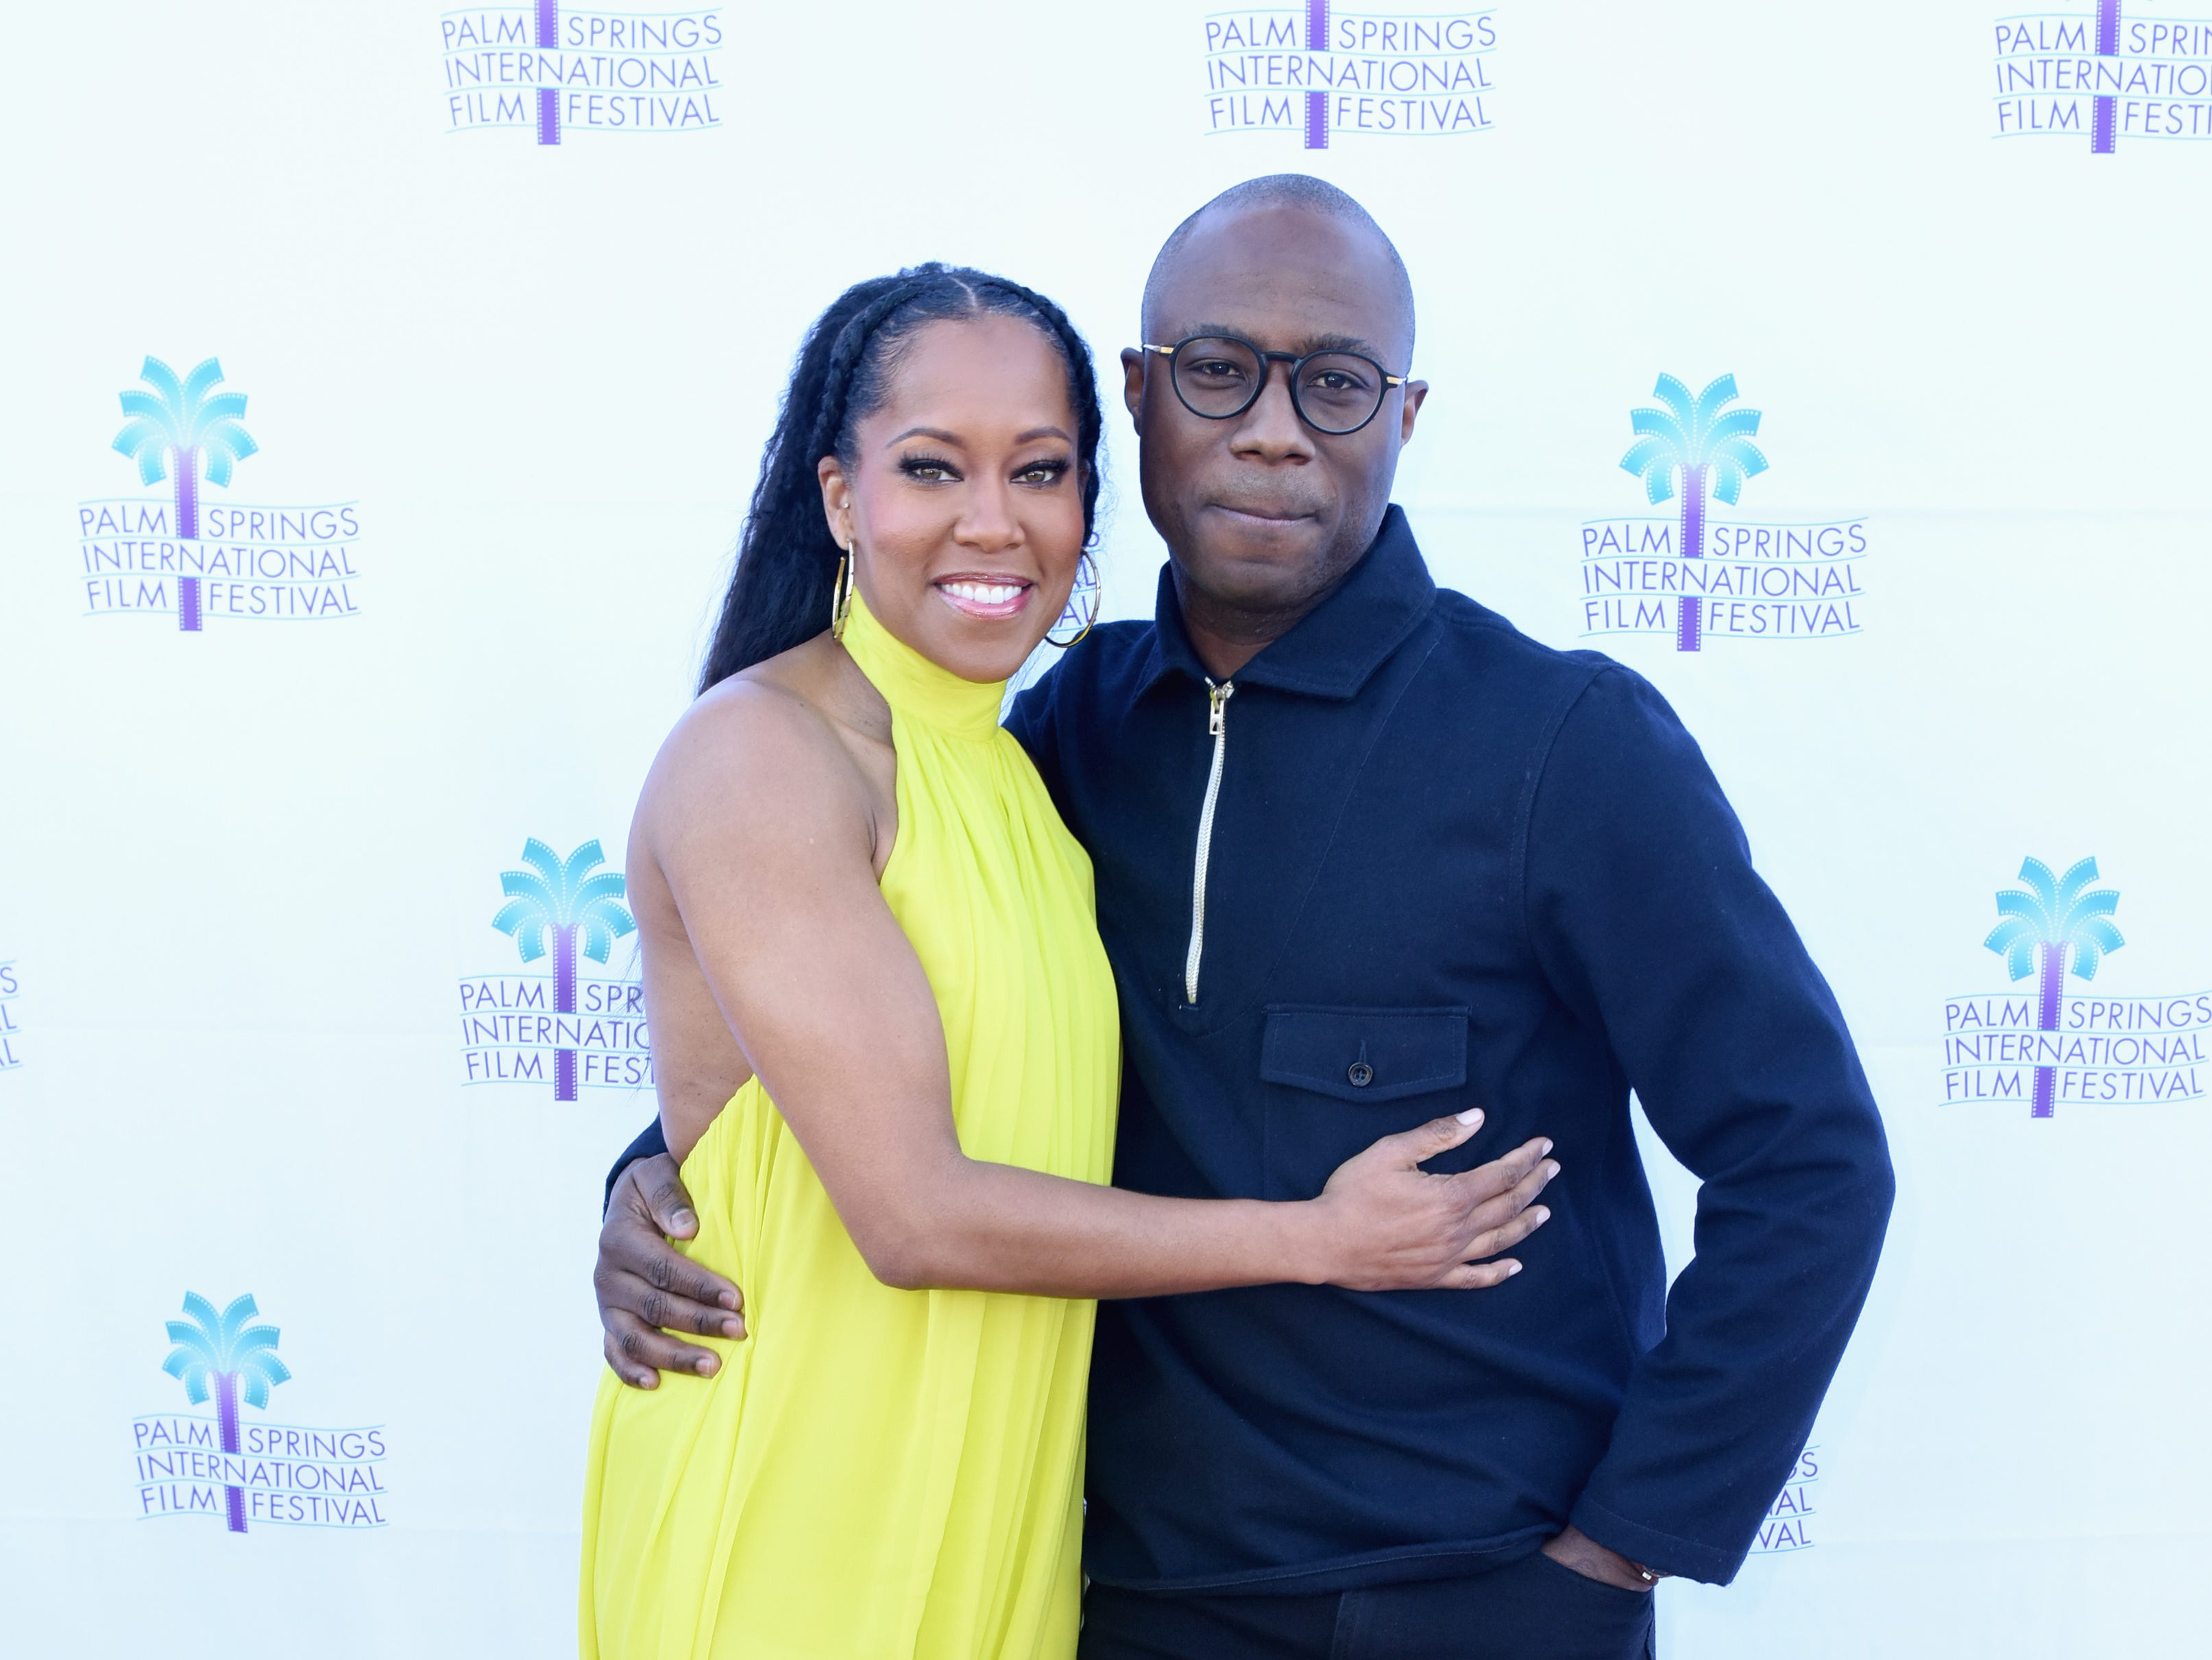 "PALM SPRINGS, CA - JANUARY 03:  Regina King (L) and Barry Jenkins attend the screening of ""If Beale Street Could Talk"" at the 30th Annual Palm Springs International Film Festival on January 3, 2019 in Palm Springs, California.  (Photo by Vivien Killilea/Getty Images for Palm Springs International Film Festival ) ORG XMIT: 775276817 ORIG FILE ID: 1076912496"